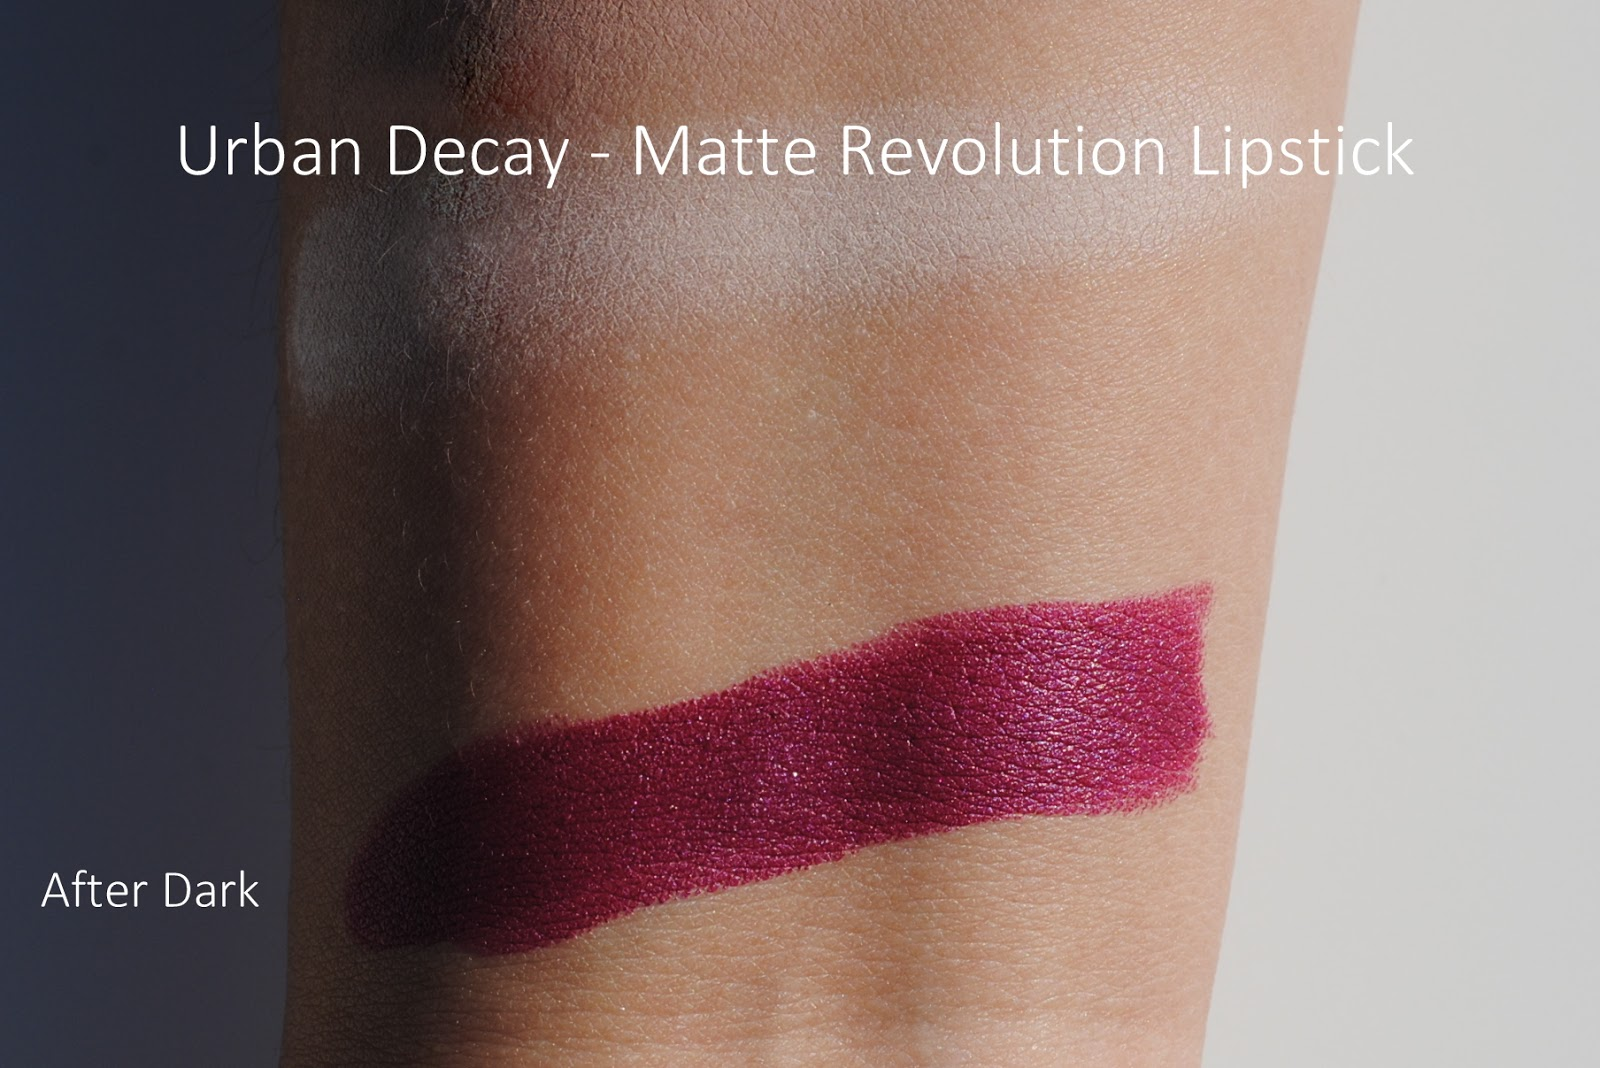 urban decay matte revolution lipstick review swatches